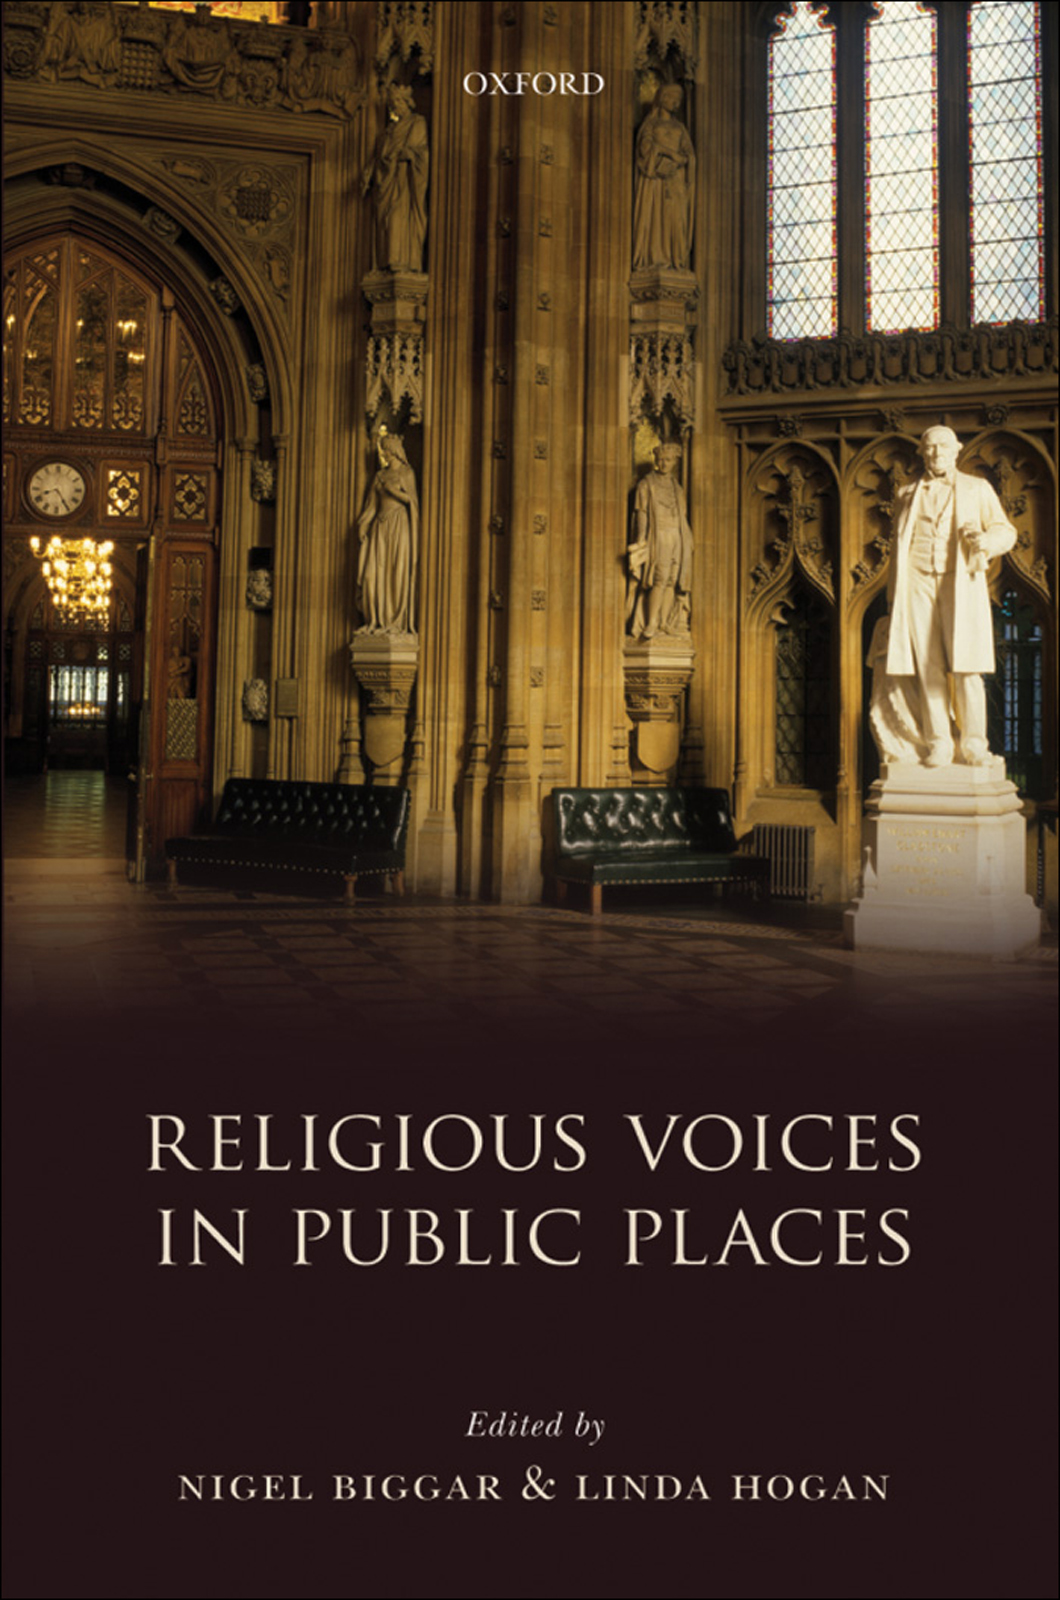 Religious Voices in Public Places